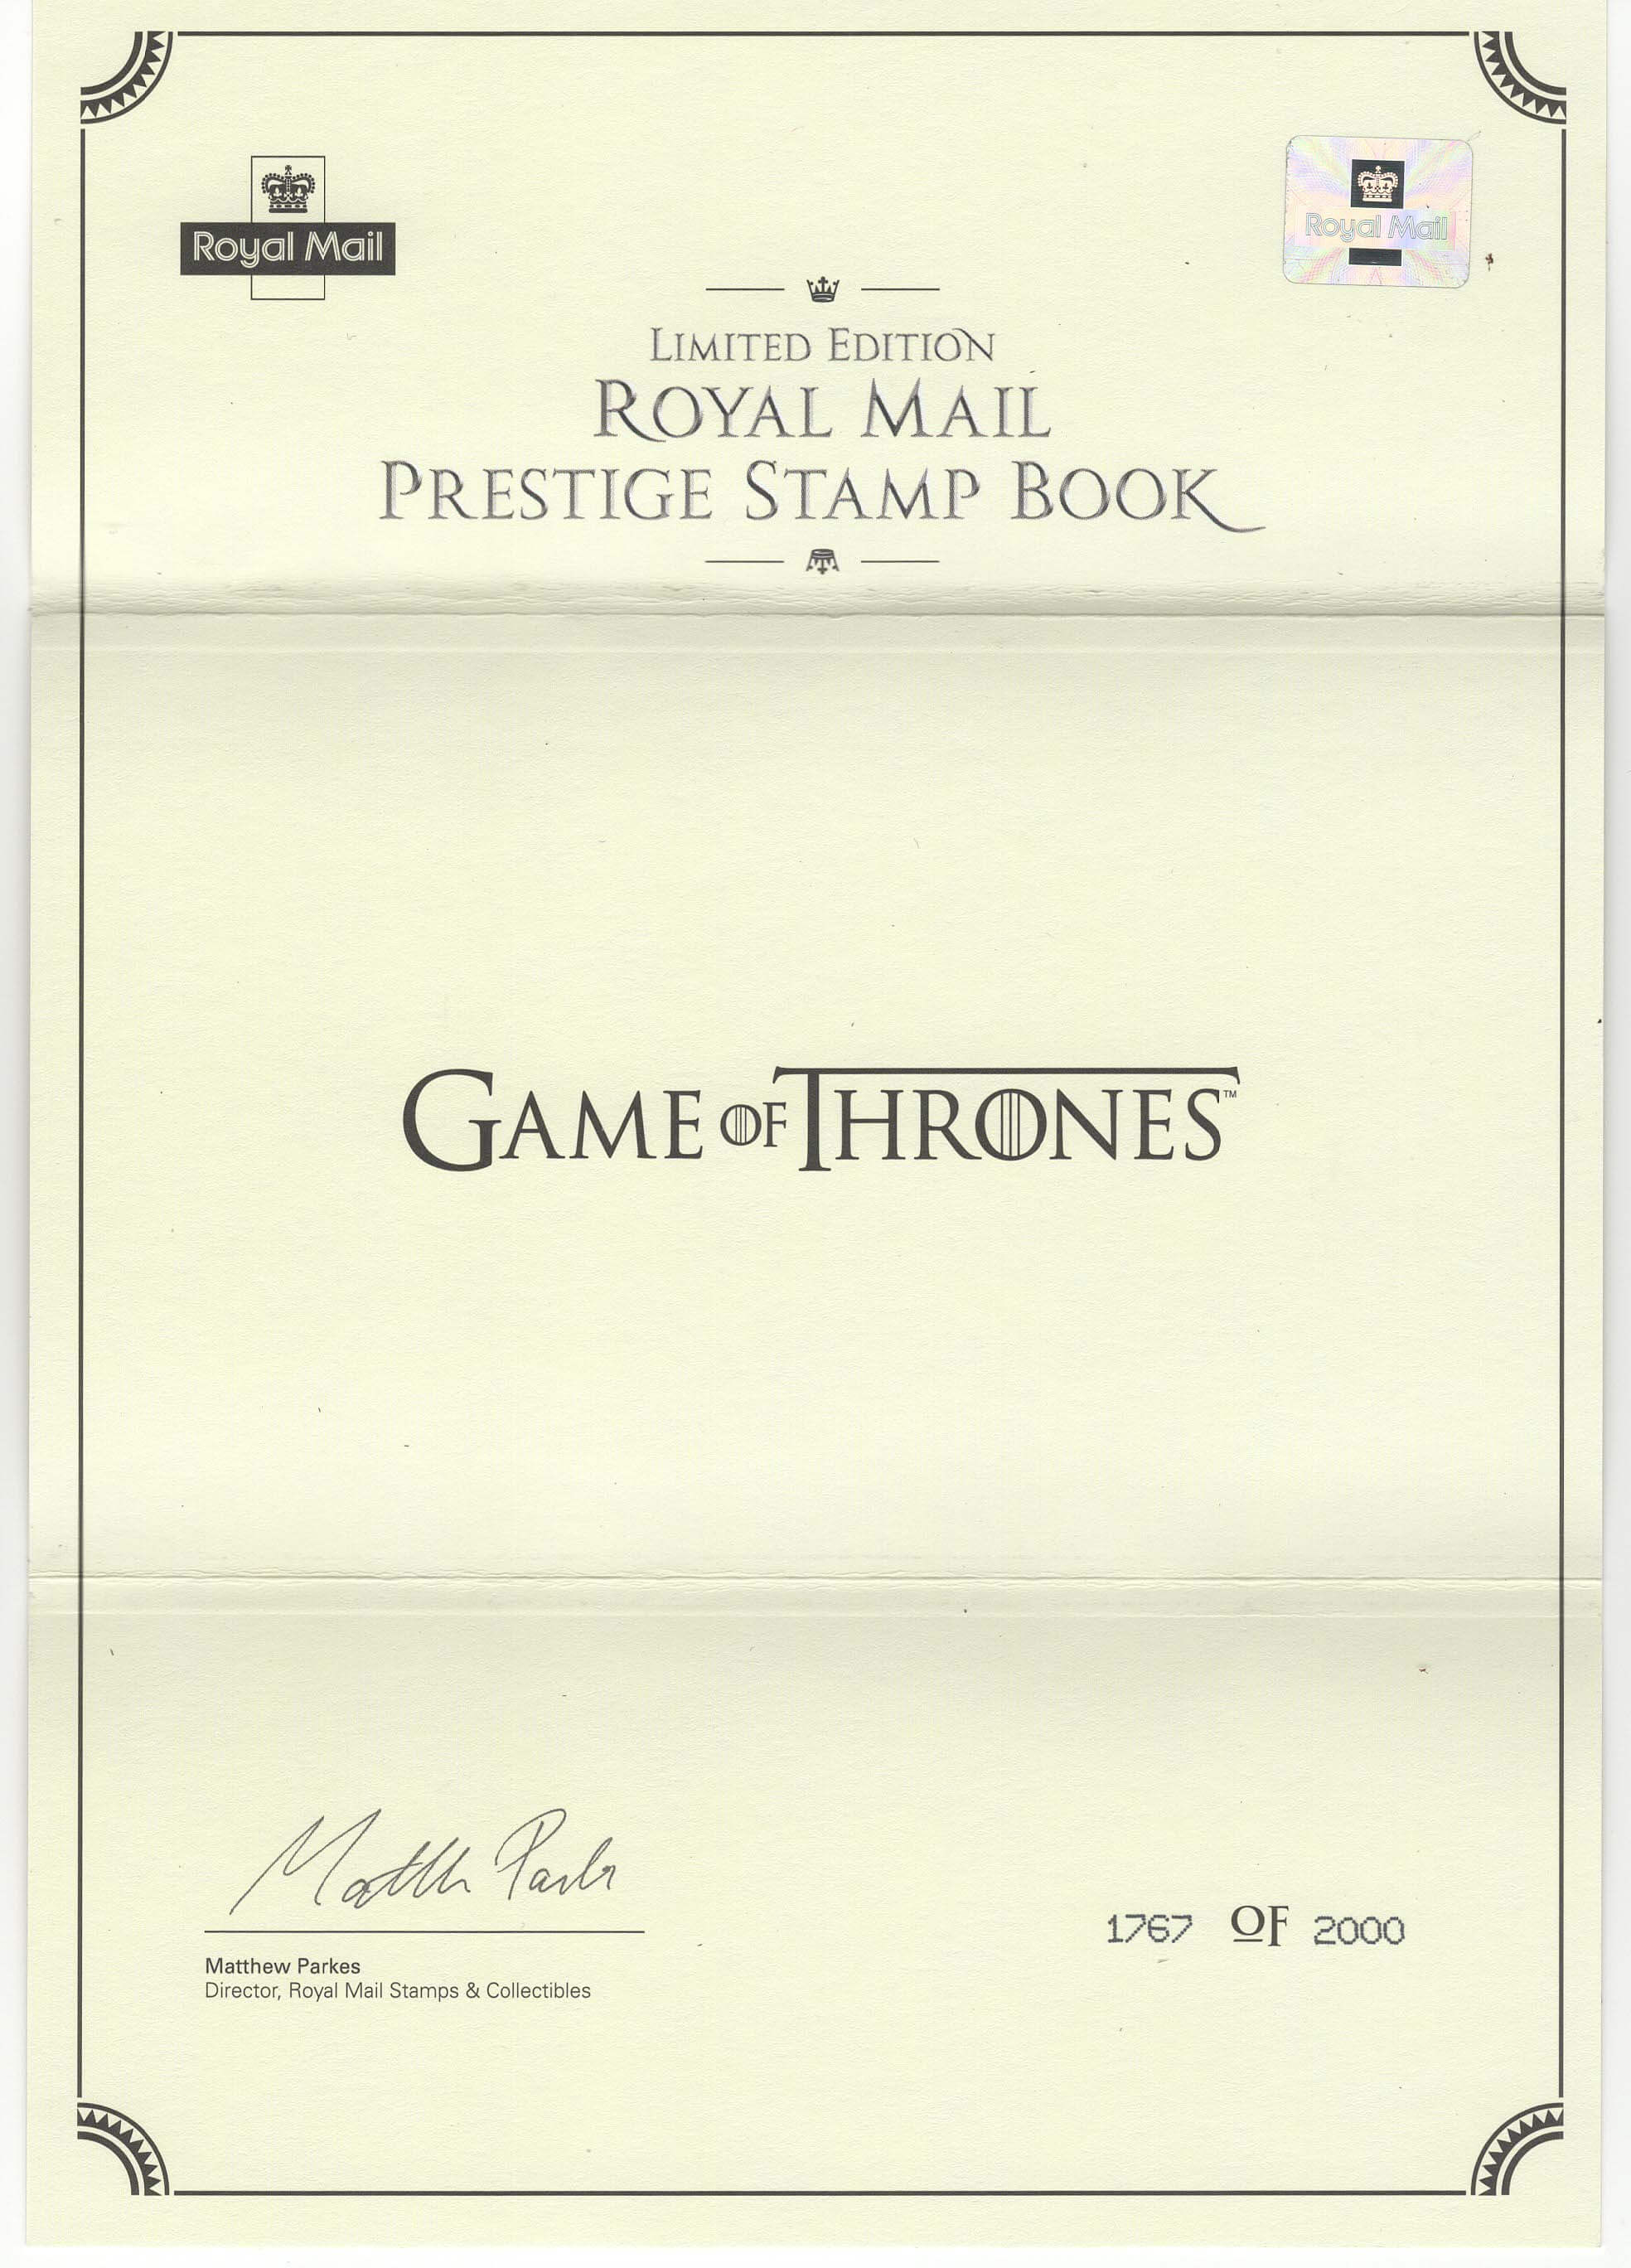 Limited Edition Royal Mail Game of Thrones PSB image 3